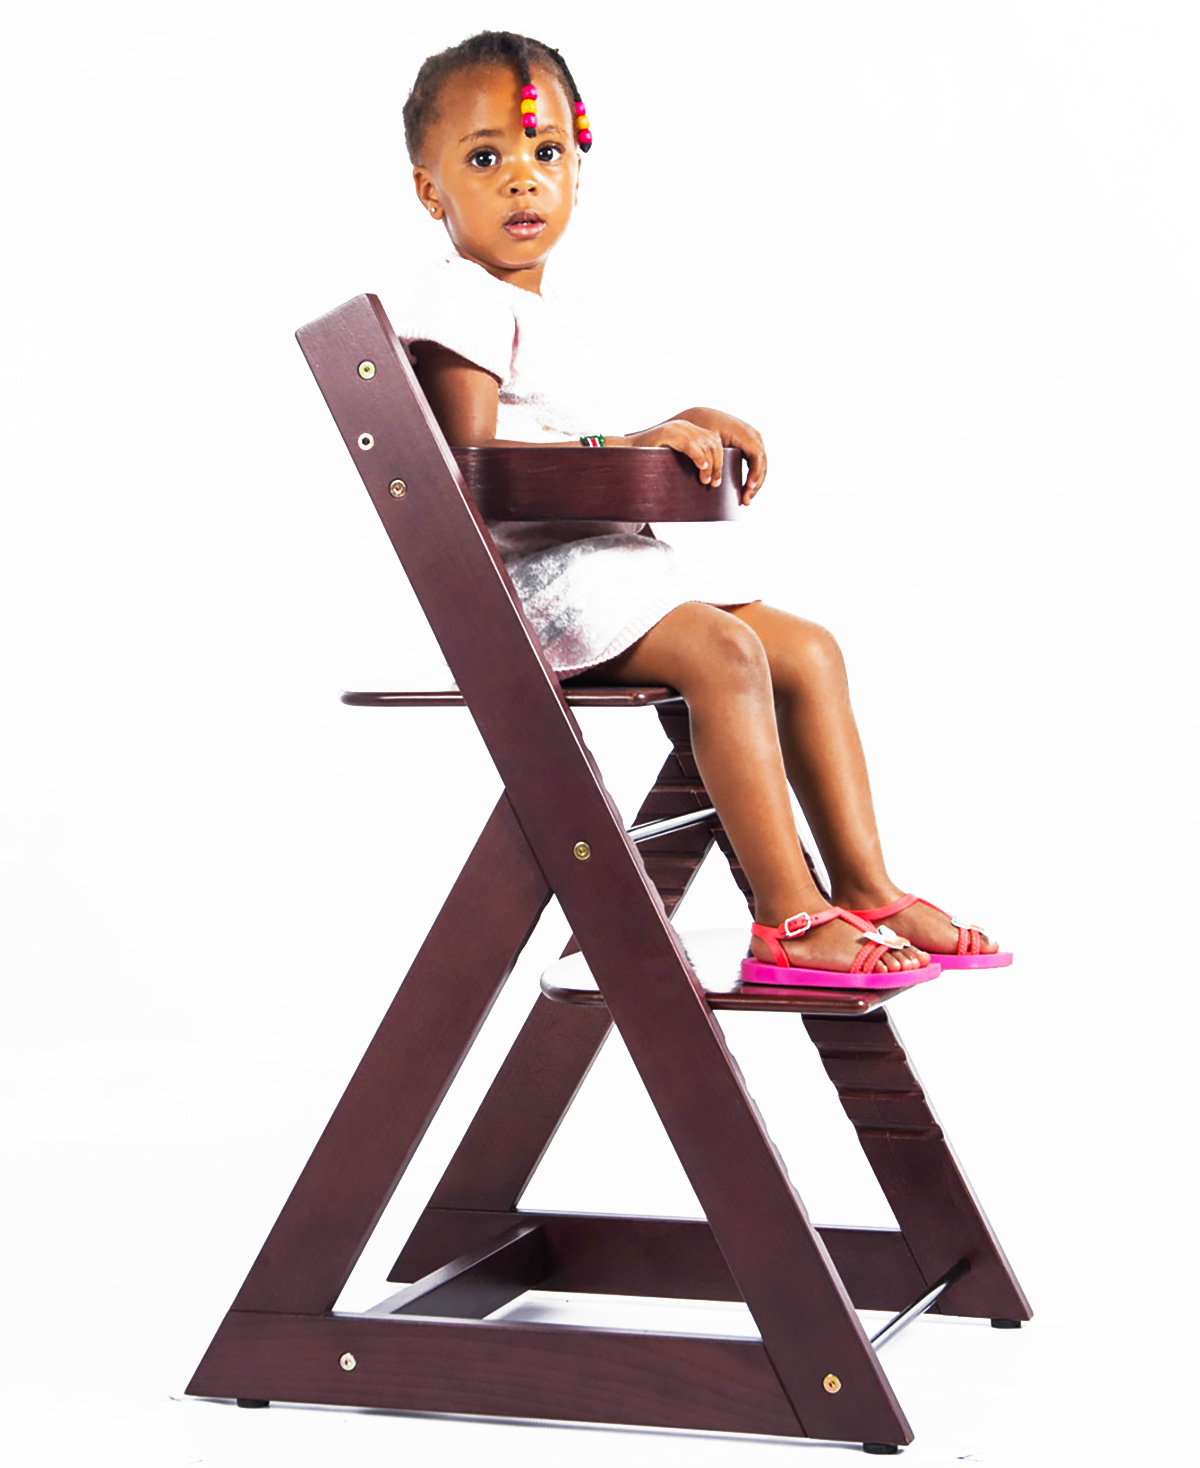 Chairs - Toddler Chair